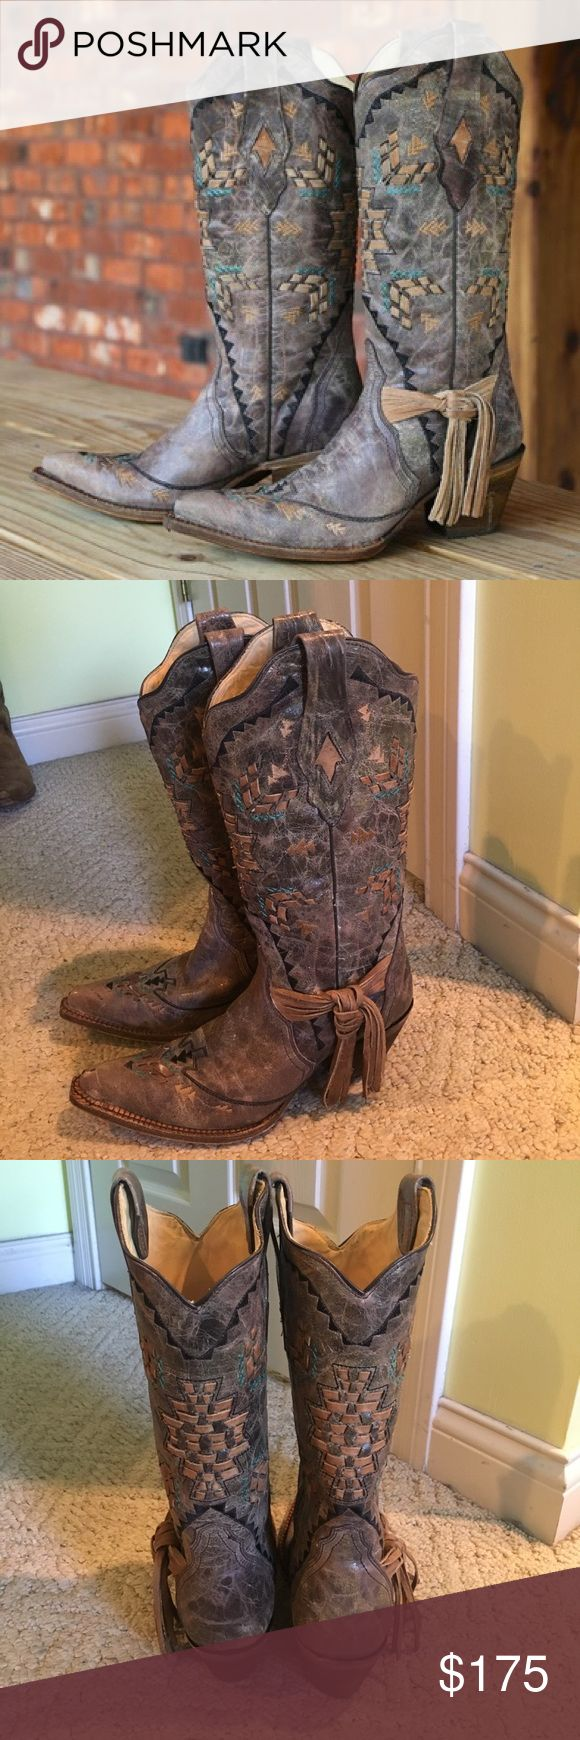 Coral Boots tobacco laser woven  style: A2992 Brand new! Never worn! I will ship them in the original box. Size 8 Corral Shoes Heeled Boots